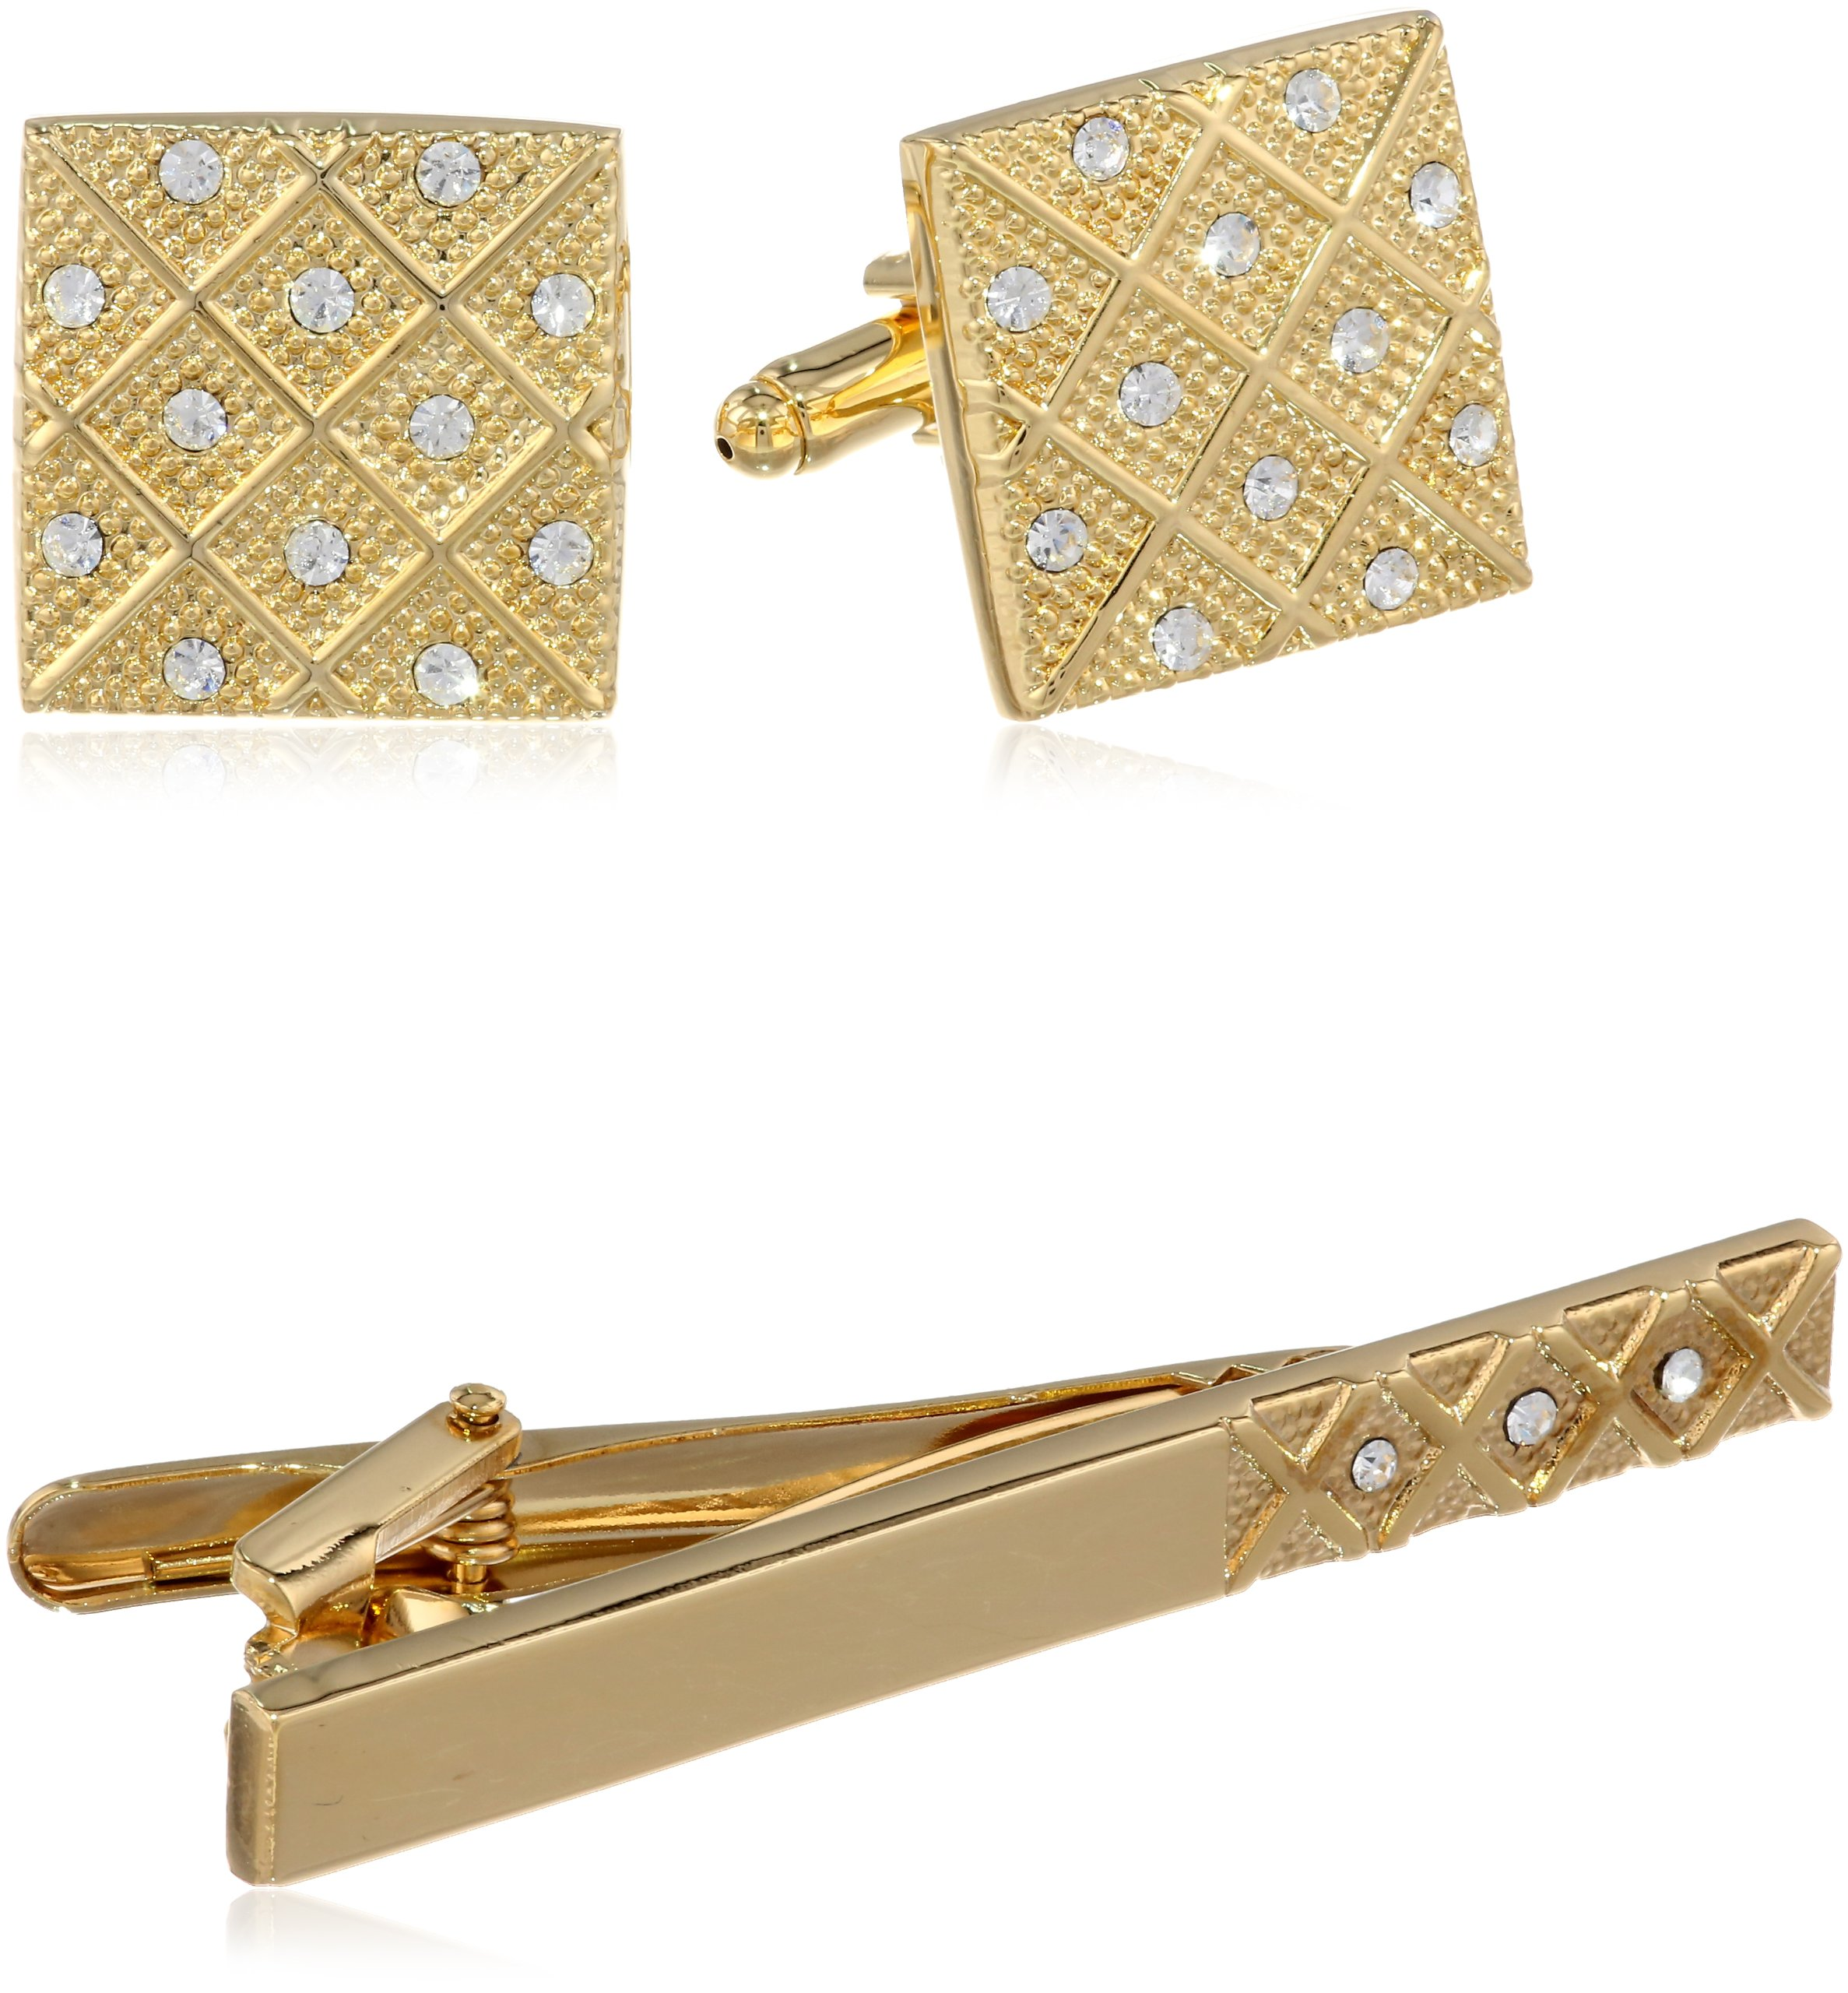 Stacy Adams Men's Cuff Link and Tie Bar With Crystals Set, Gold, One Size